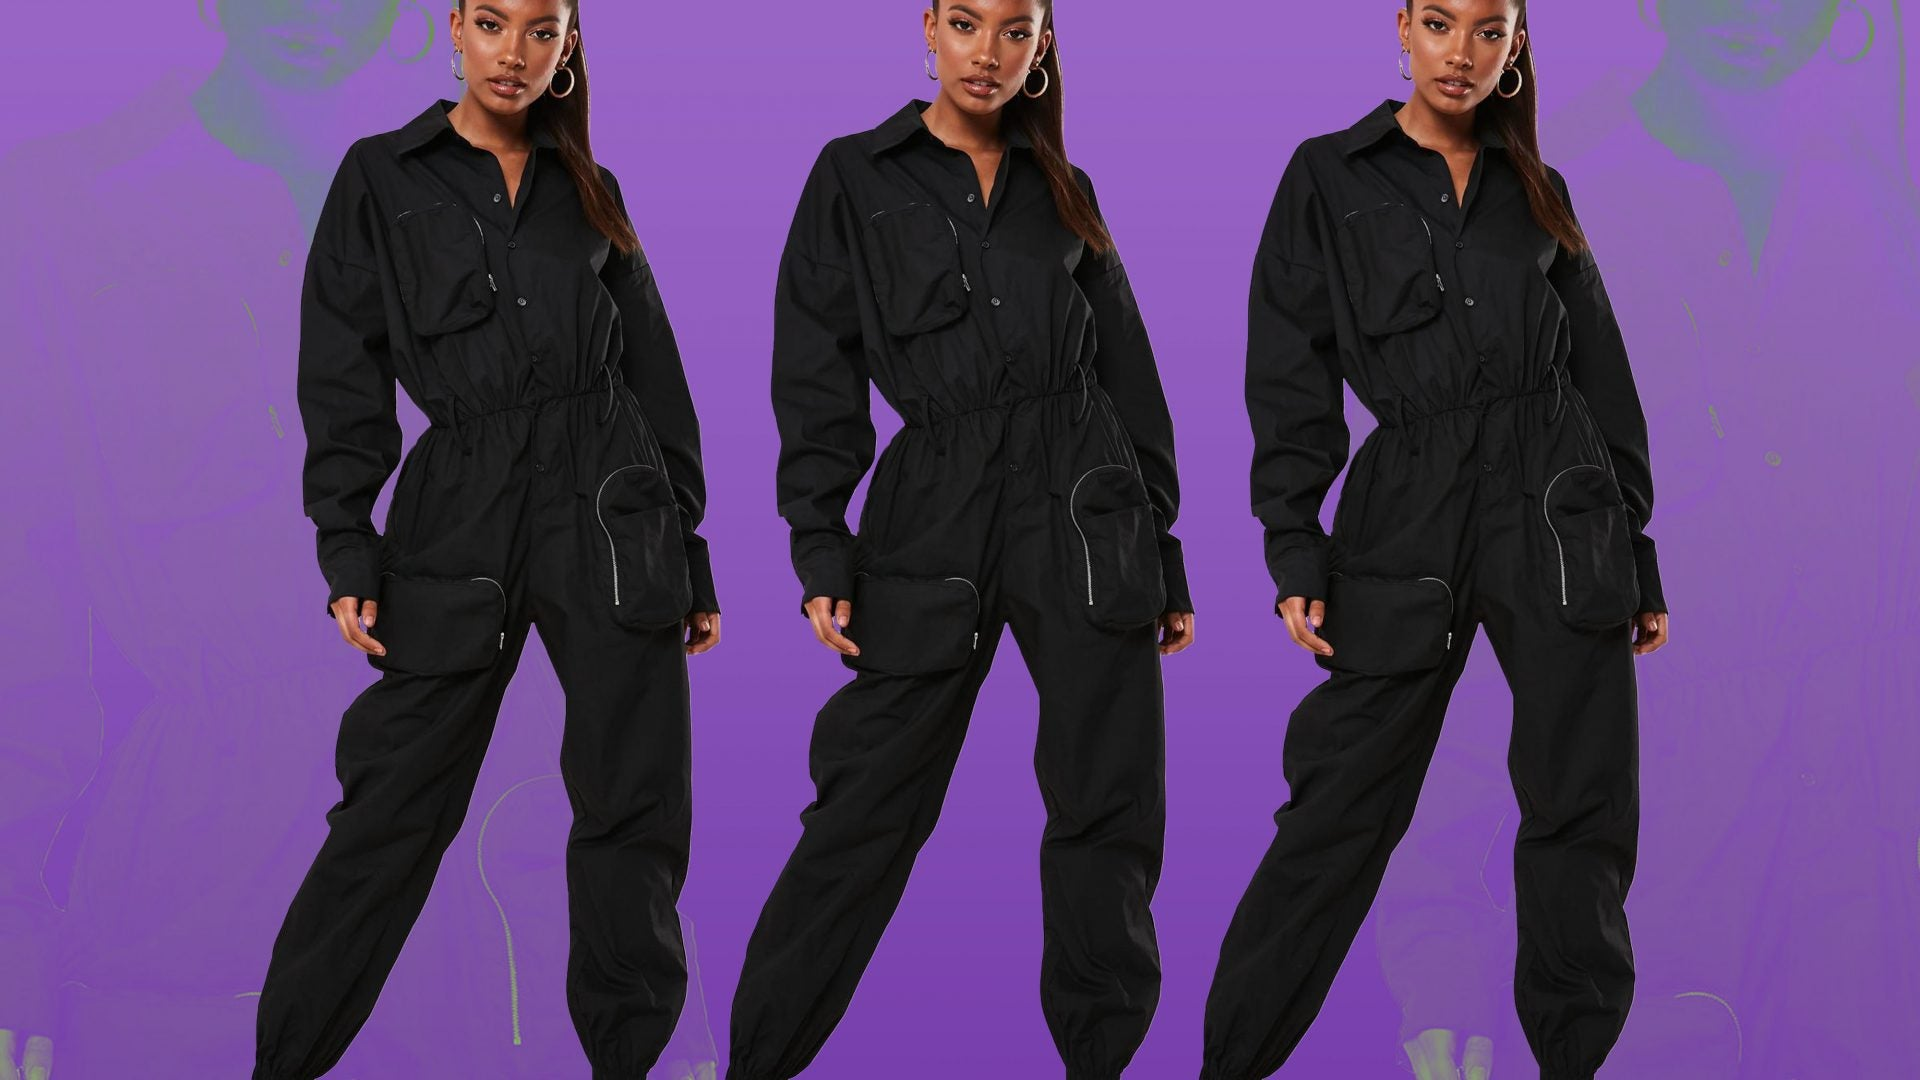 Step Out On The Yard With These Fire Looks For Homecoming